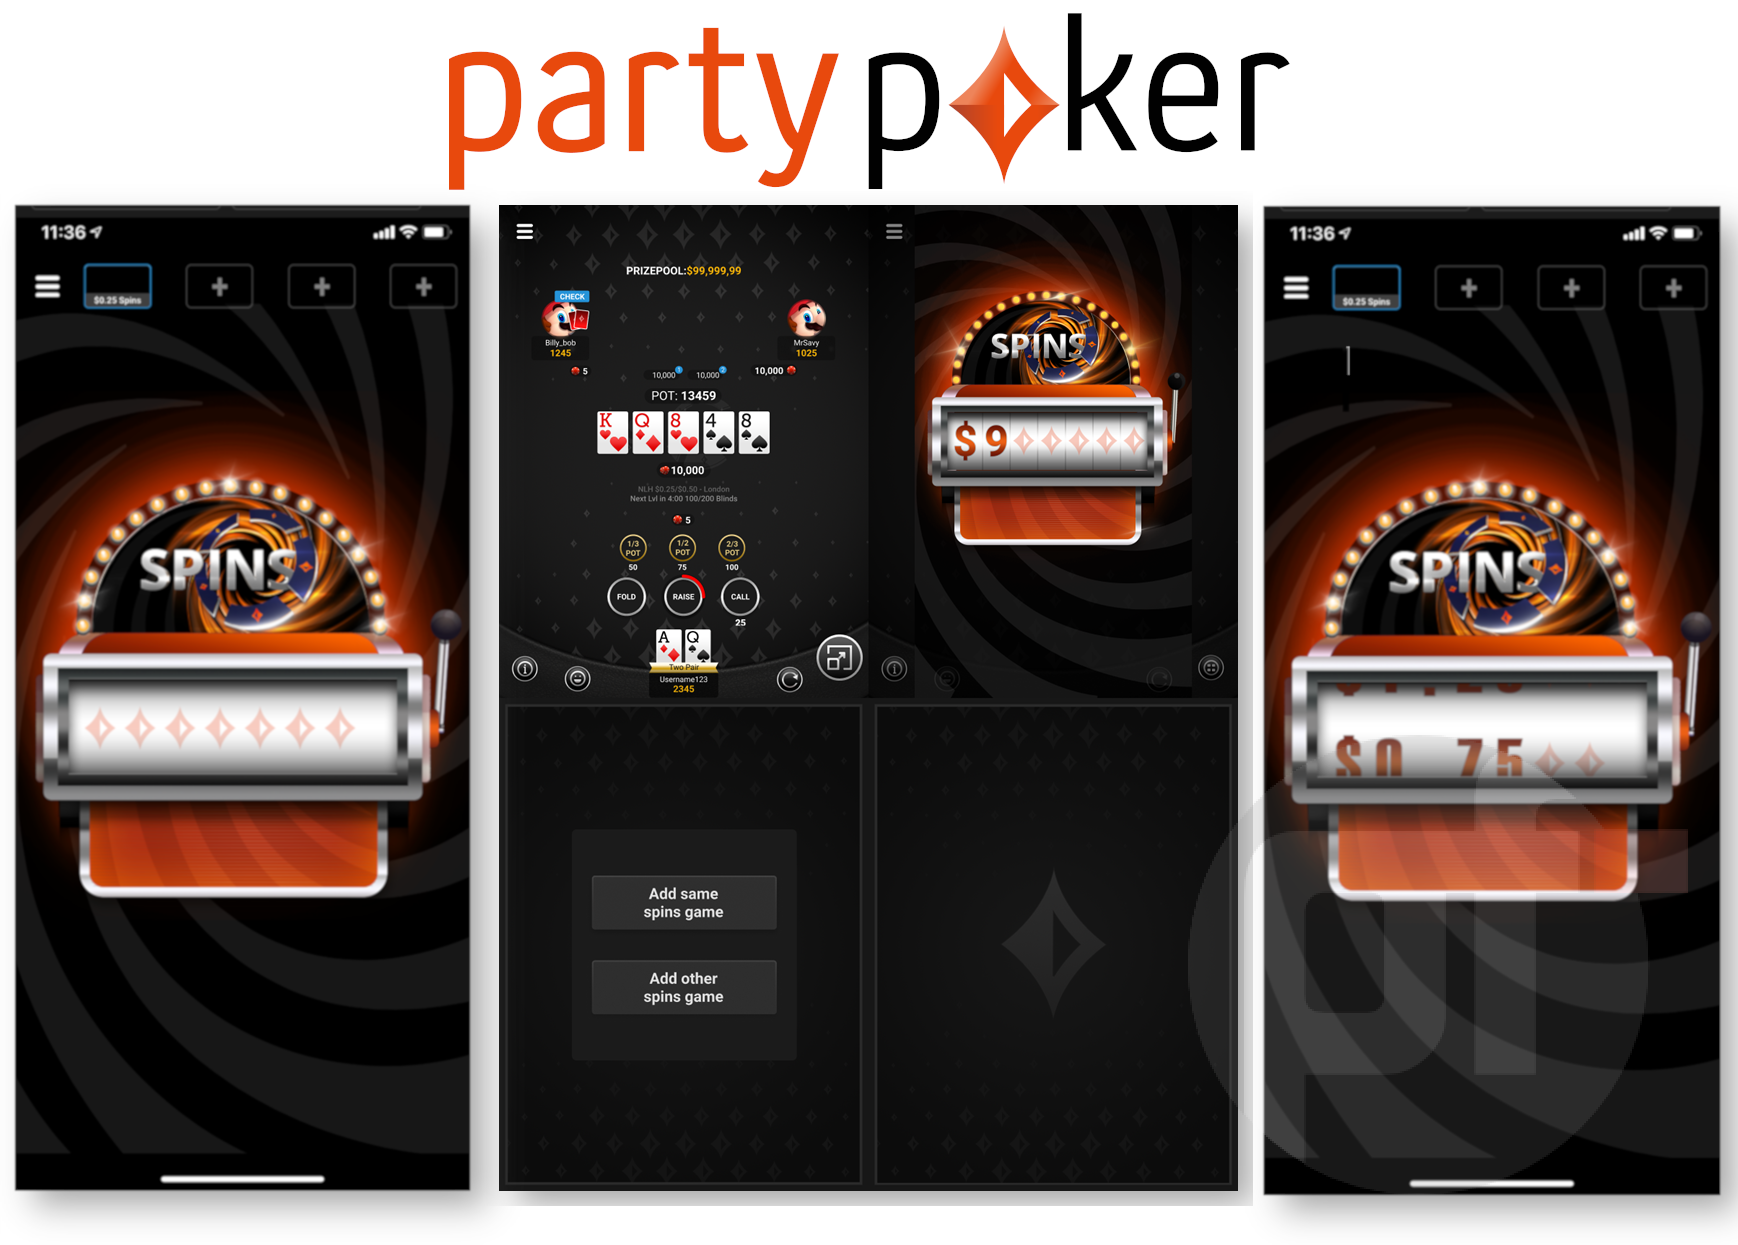 partypoker has released an all-new mobile app with new exciting features. partypoker's new mobile app includes completely redesigned tables making it much easier for players to play with a single hand.